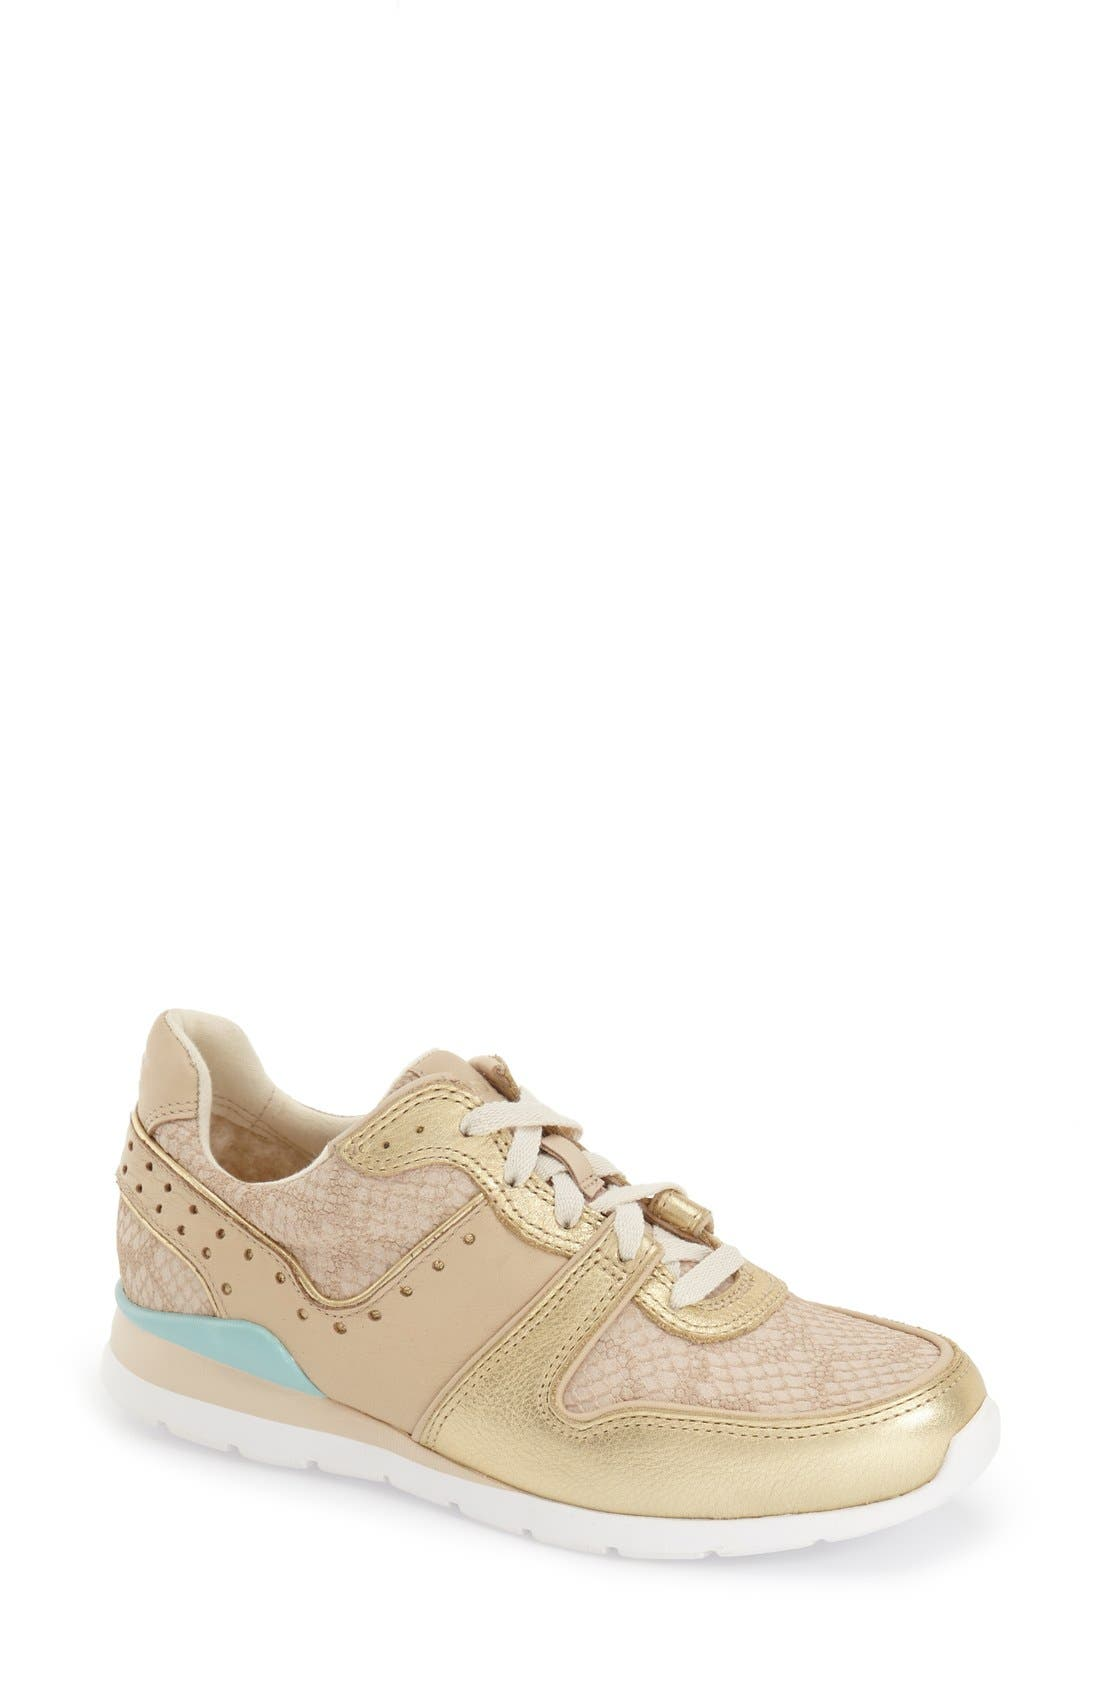 Deaven Sneaker,                             Main thumbnail 1, color,                             Gold Fabric